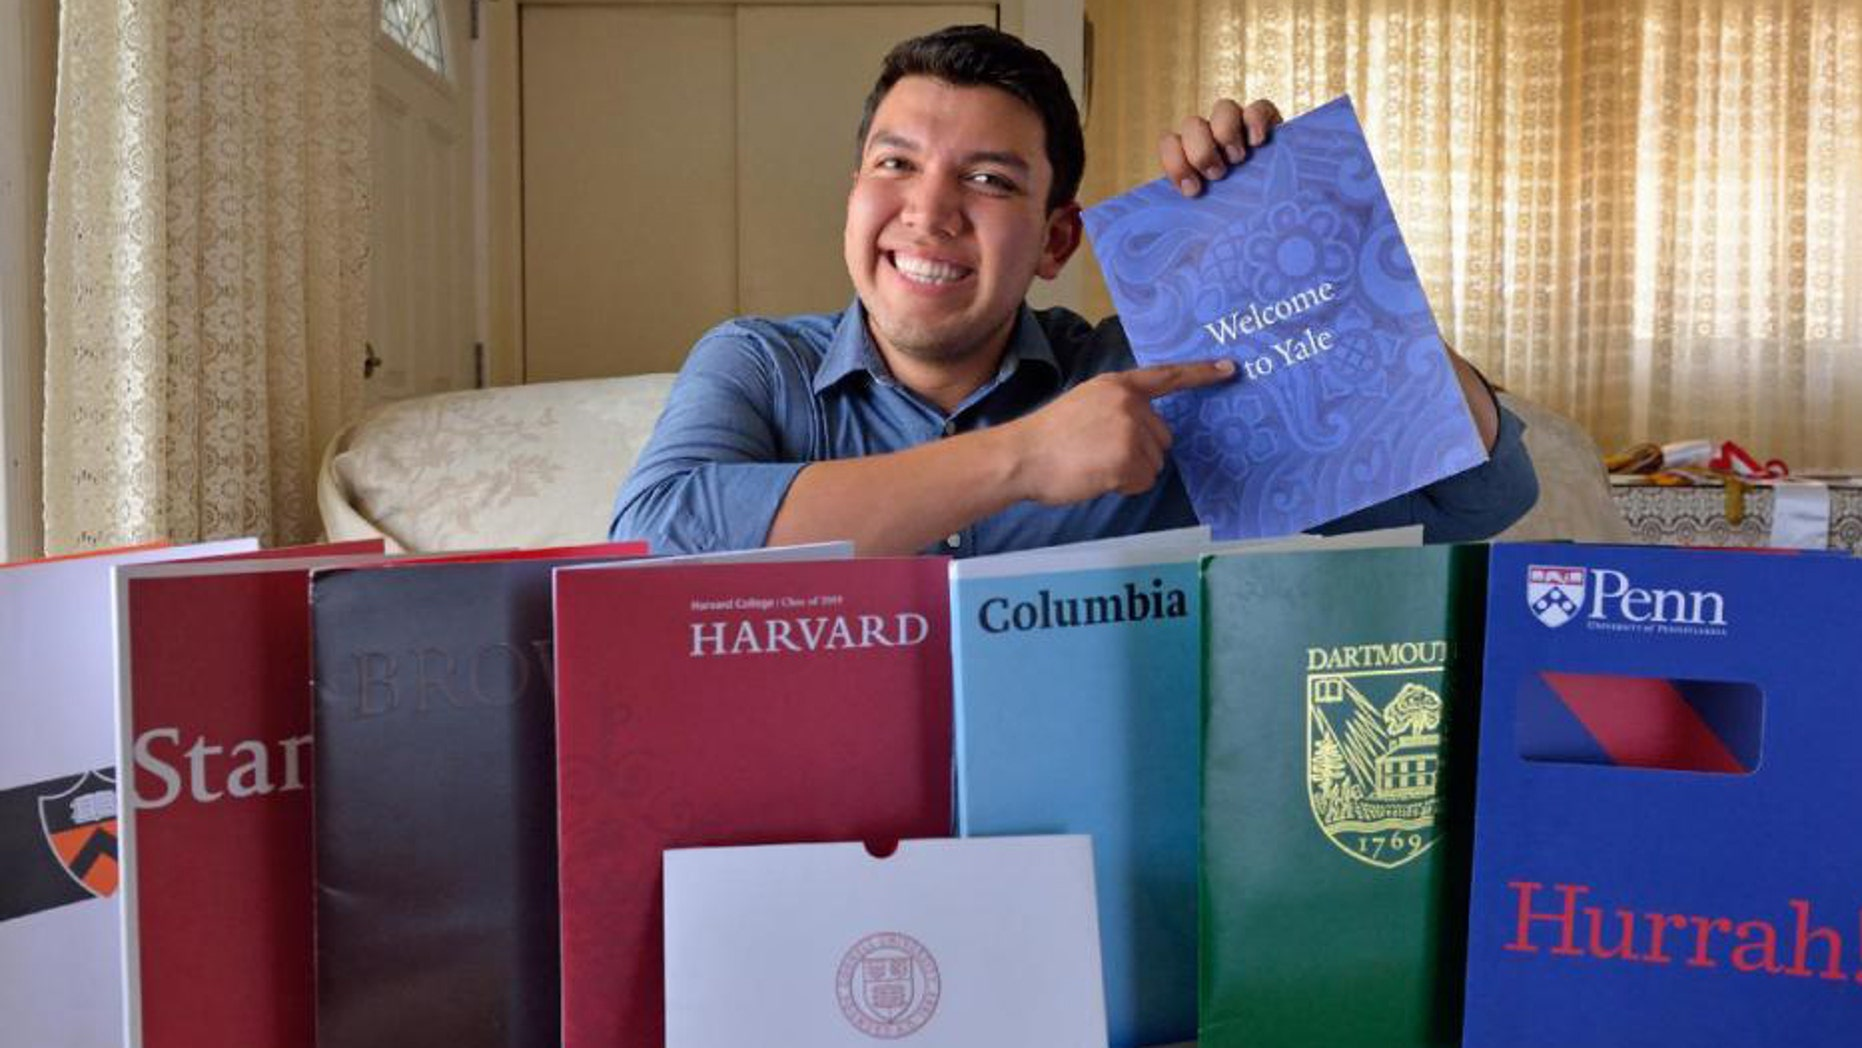 In this June 1, 2015 photo, Fernando Rojas, 17, a Fullerton High School graduate, poses for a photo in Fullerton, Calif. with literature from the eight Ivy League universities he was accepted into. He decided to attend Yale. (Leonard Ortiz/The Orange County Register via AP)